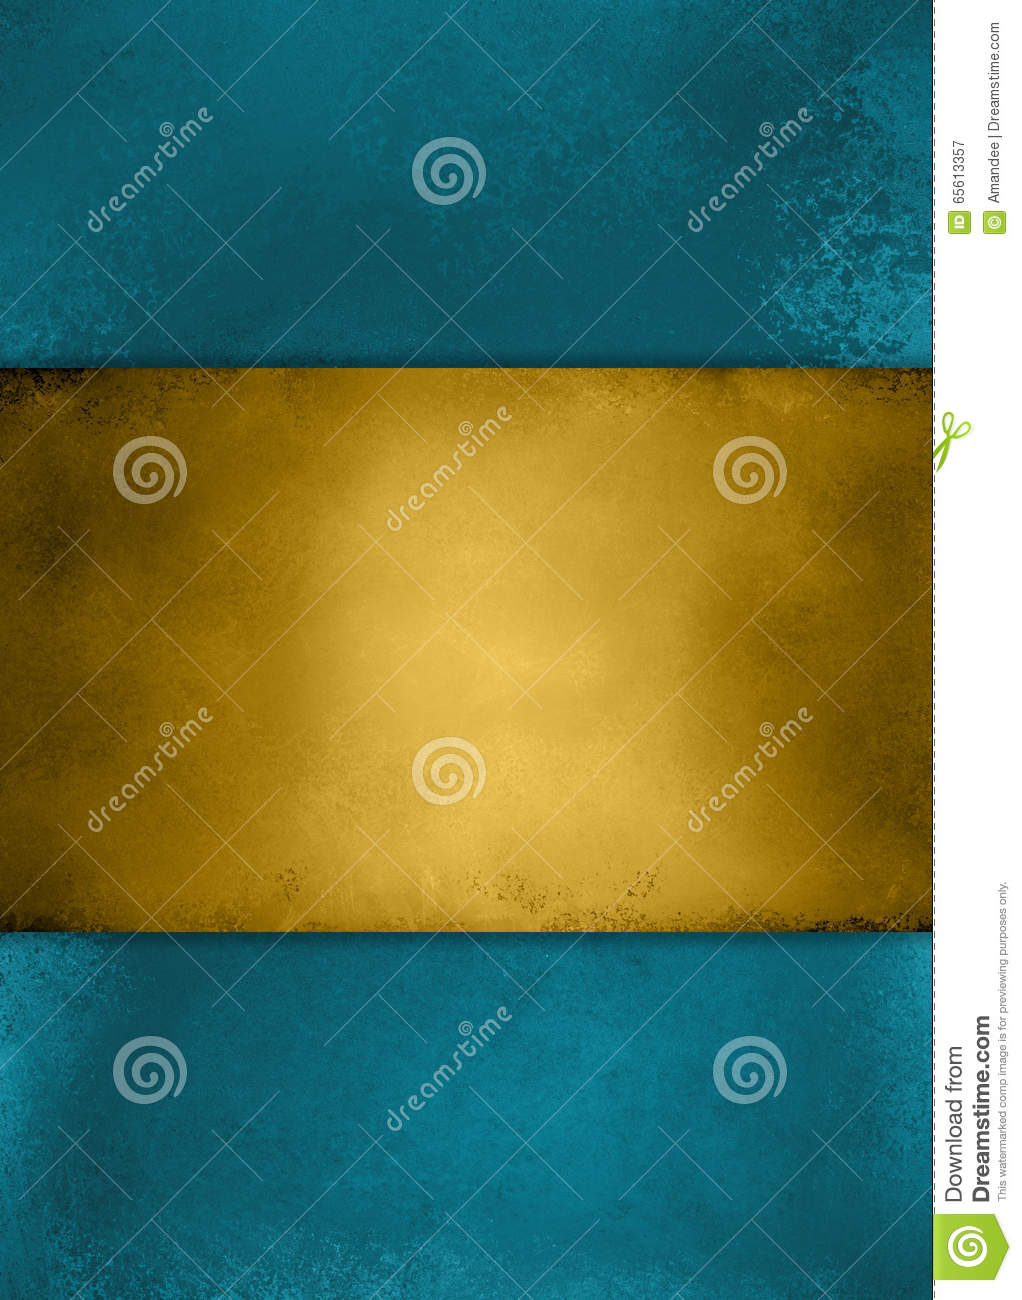 Abstract vintage blue background and gold striped center